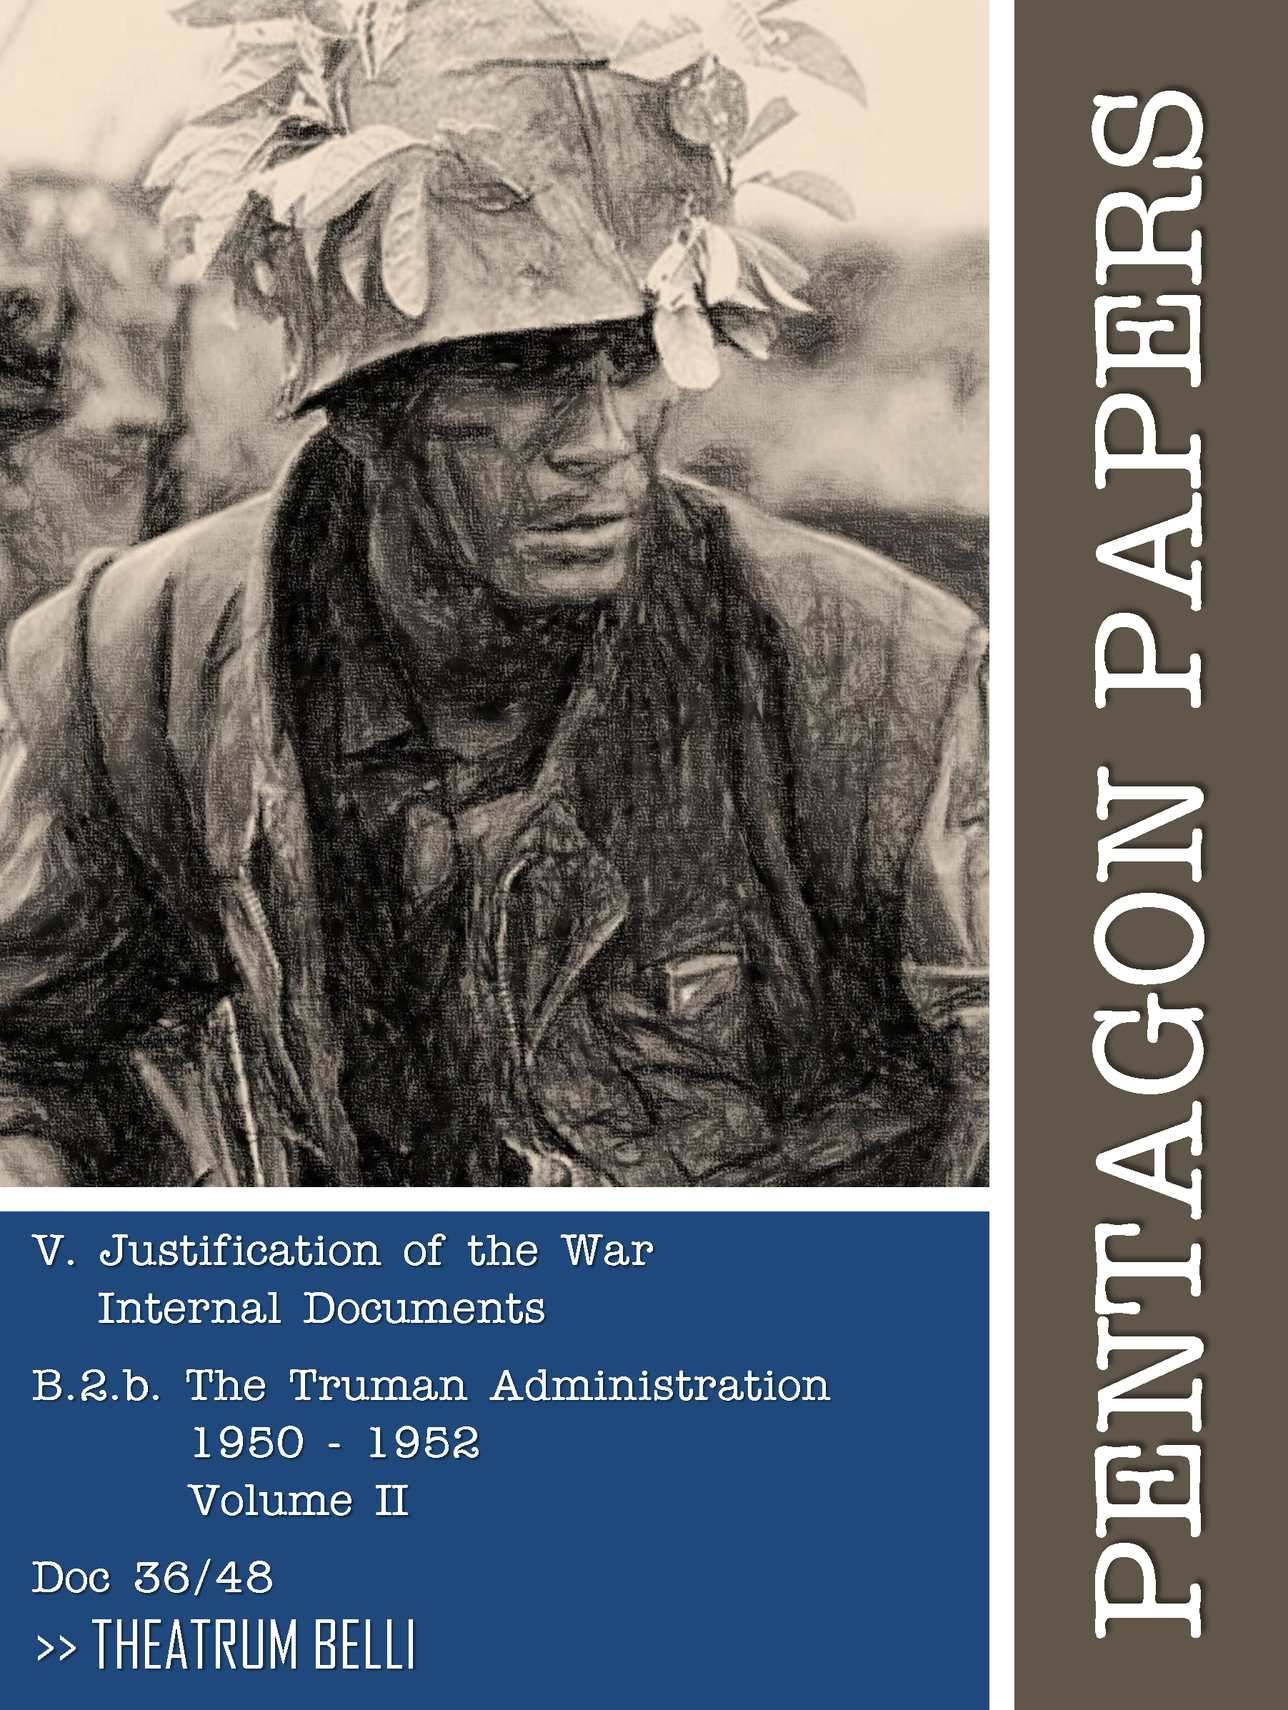 fd78d858ad62f Pentagon Papers (36 48)   Justification of the War - Internal Documents -  The Truman Administration - Volume II   1950-1952